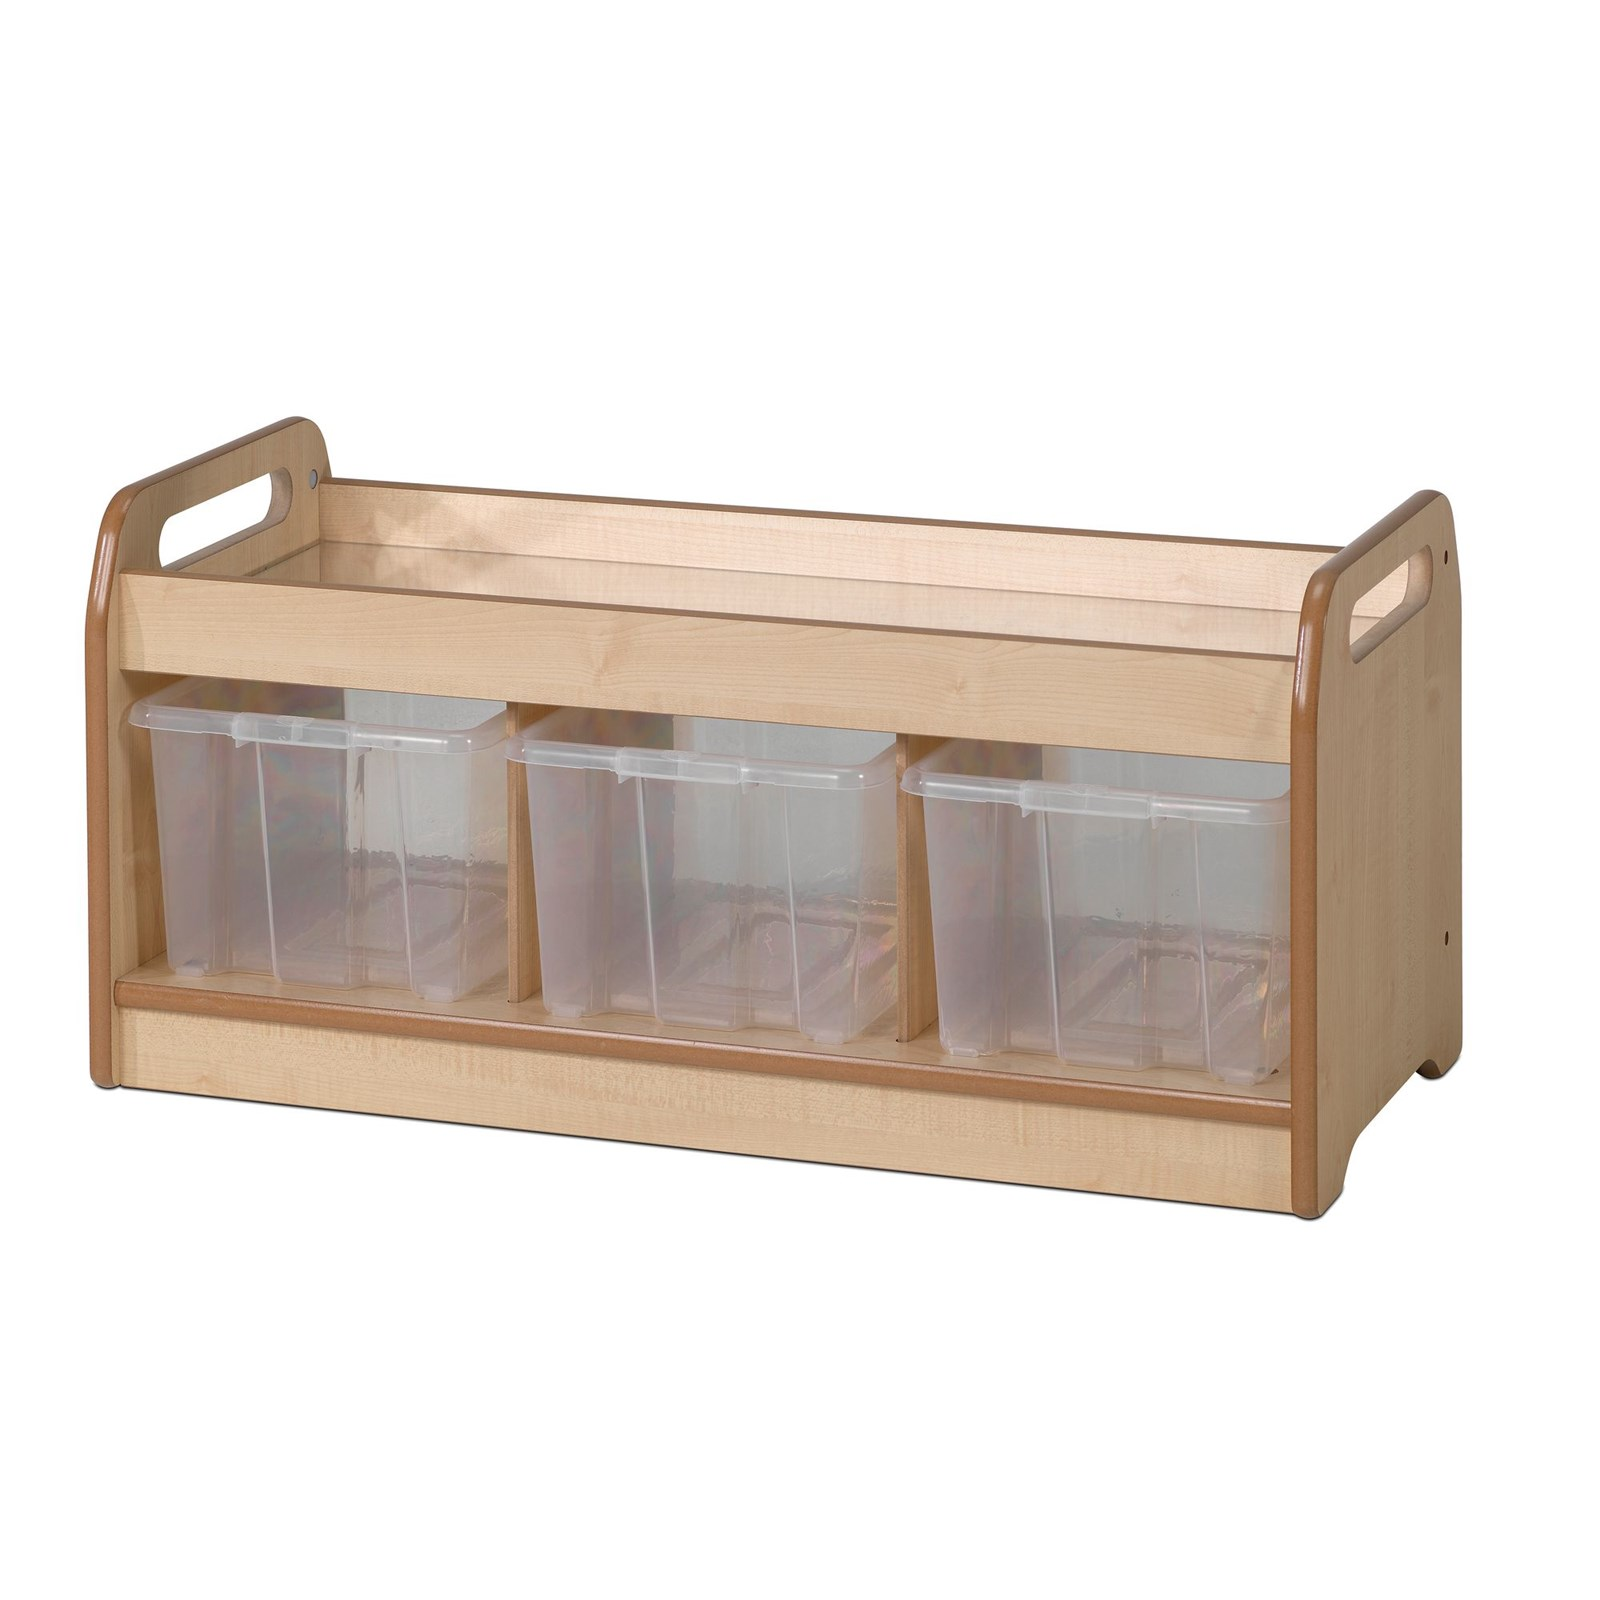 Playscapes Low Mirror Play Unit - Clear Tubs